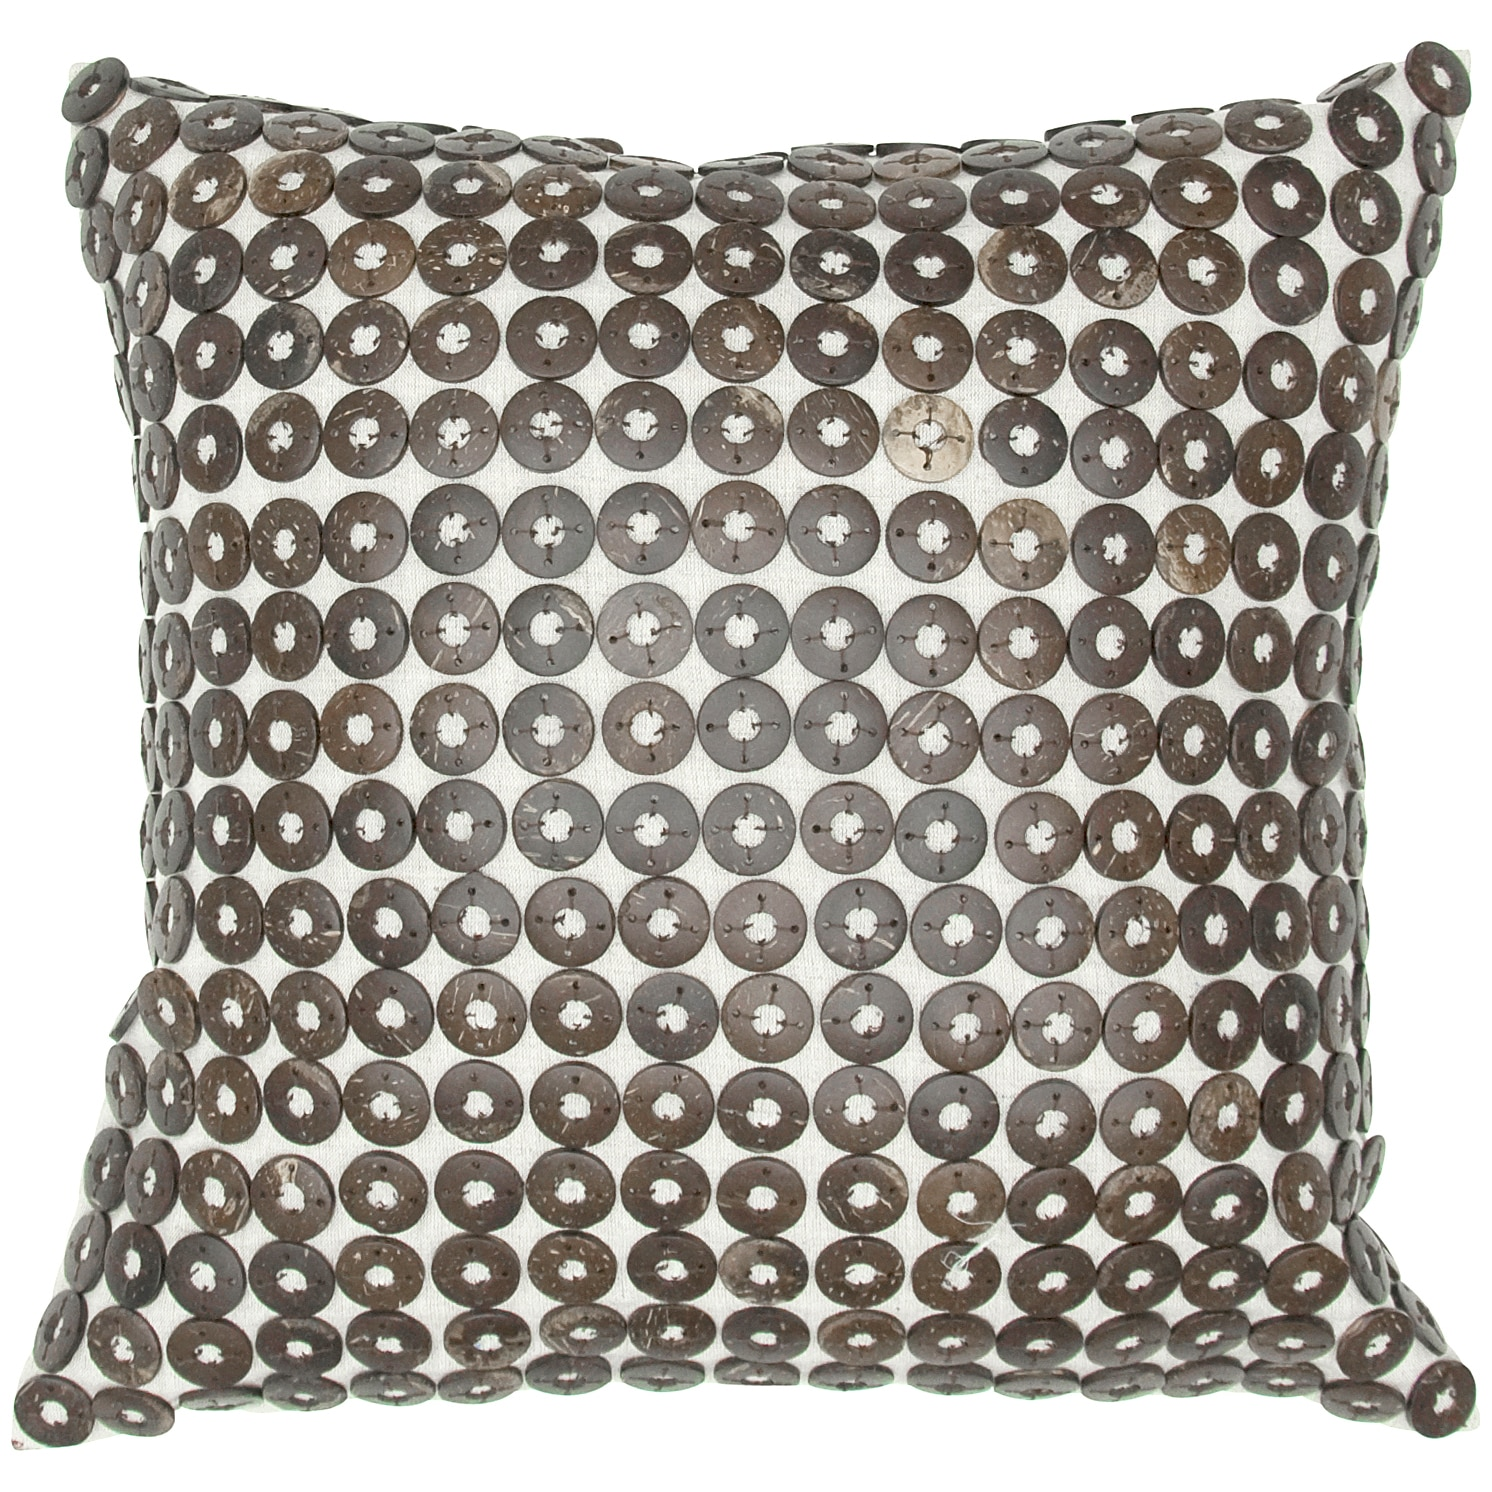 Room with a View Coconut Shell Button Feather-filled Throw Pillow